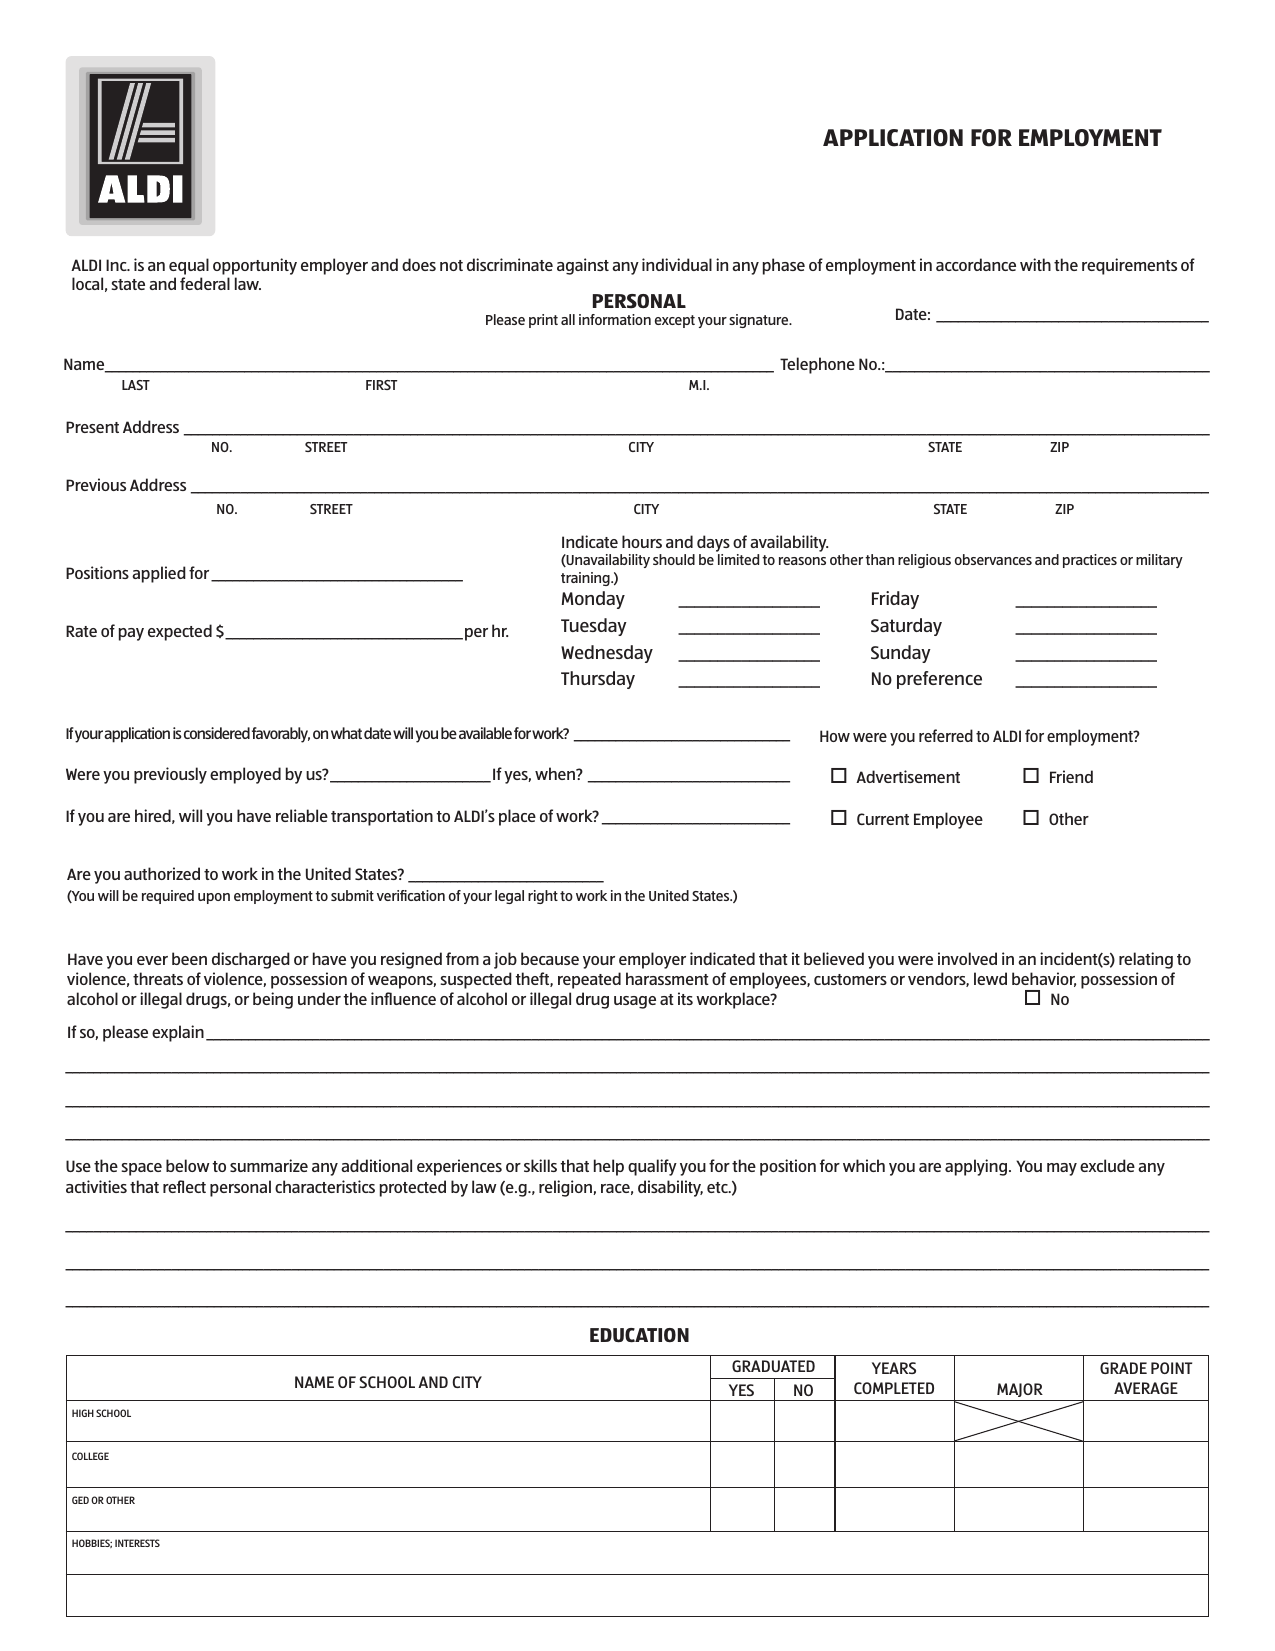 Download Aldi Job Application Form Careers Pdf Freedownloads Net